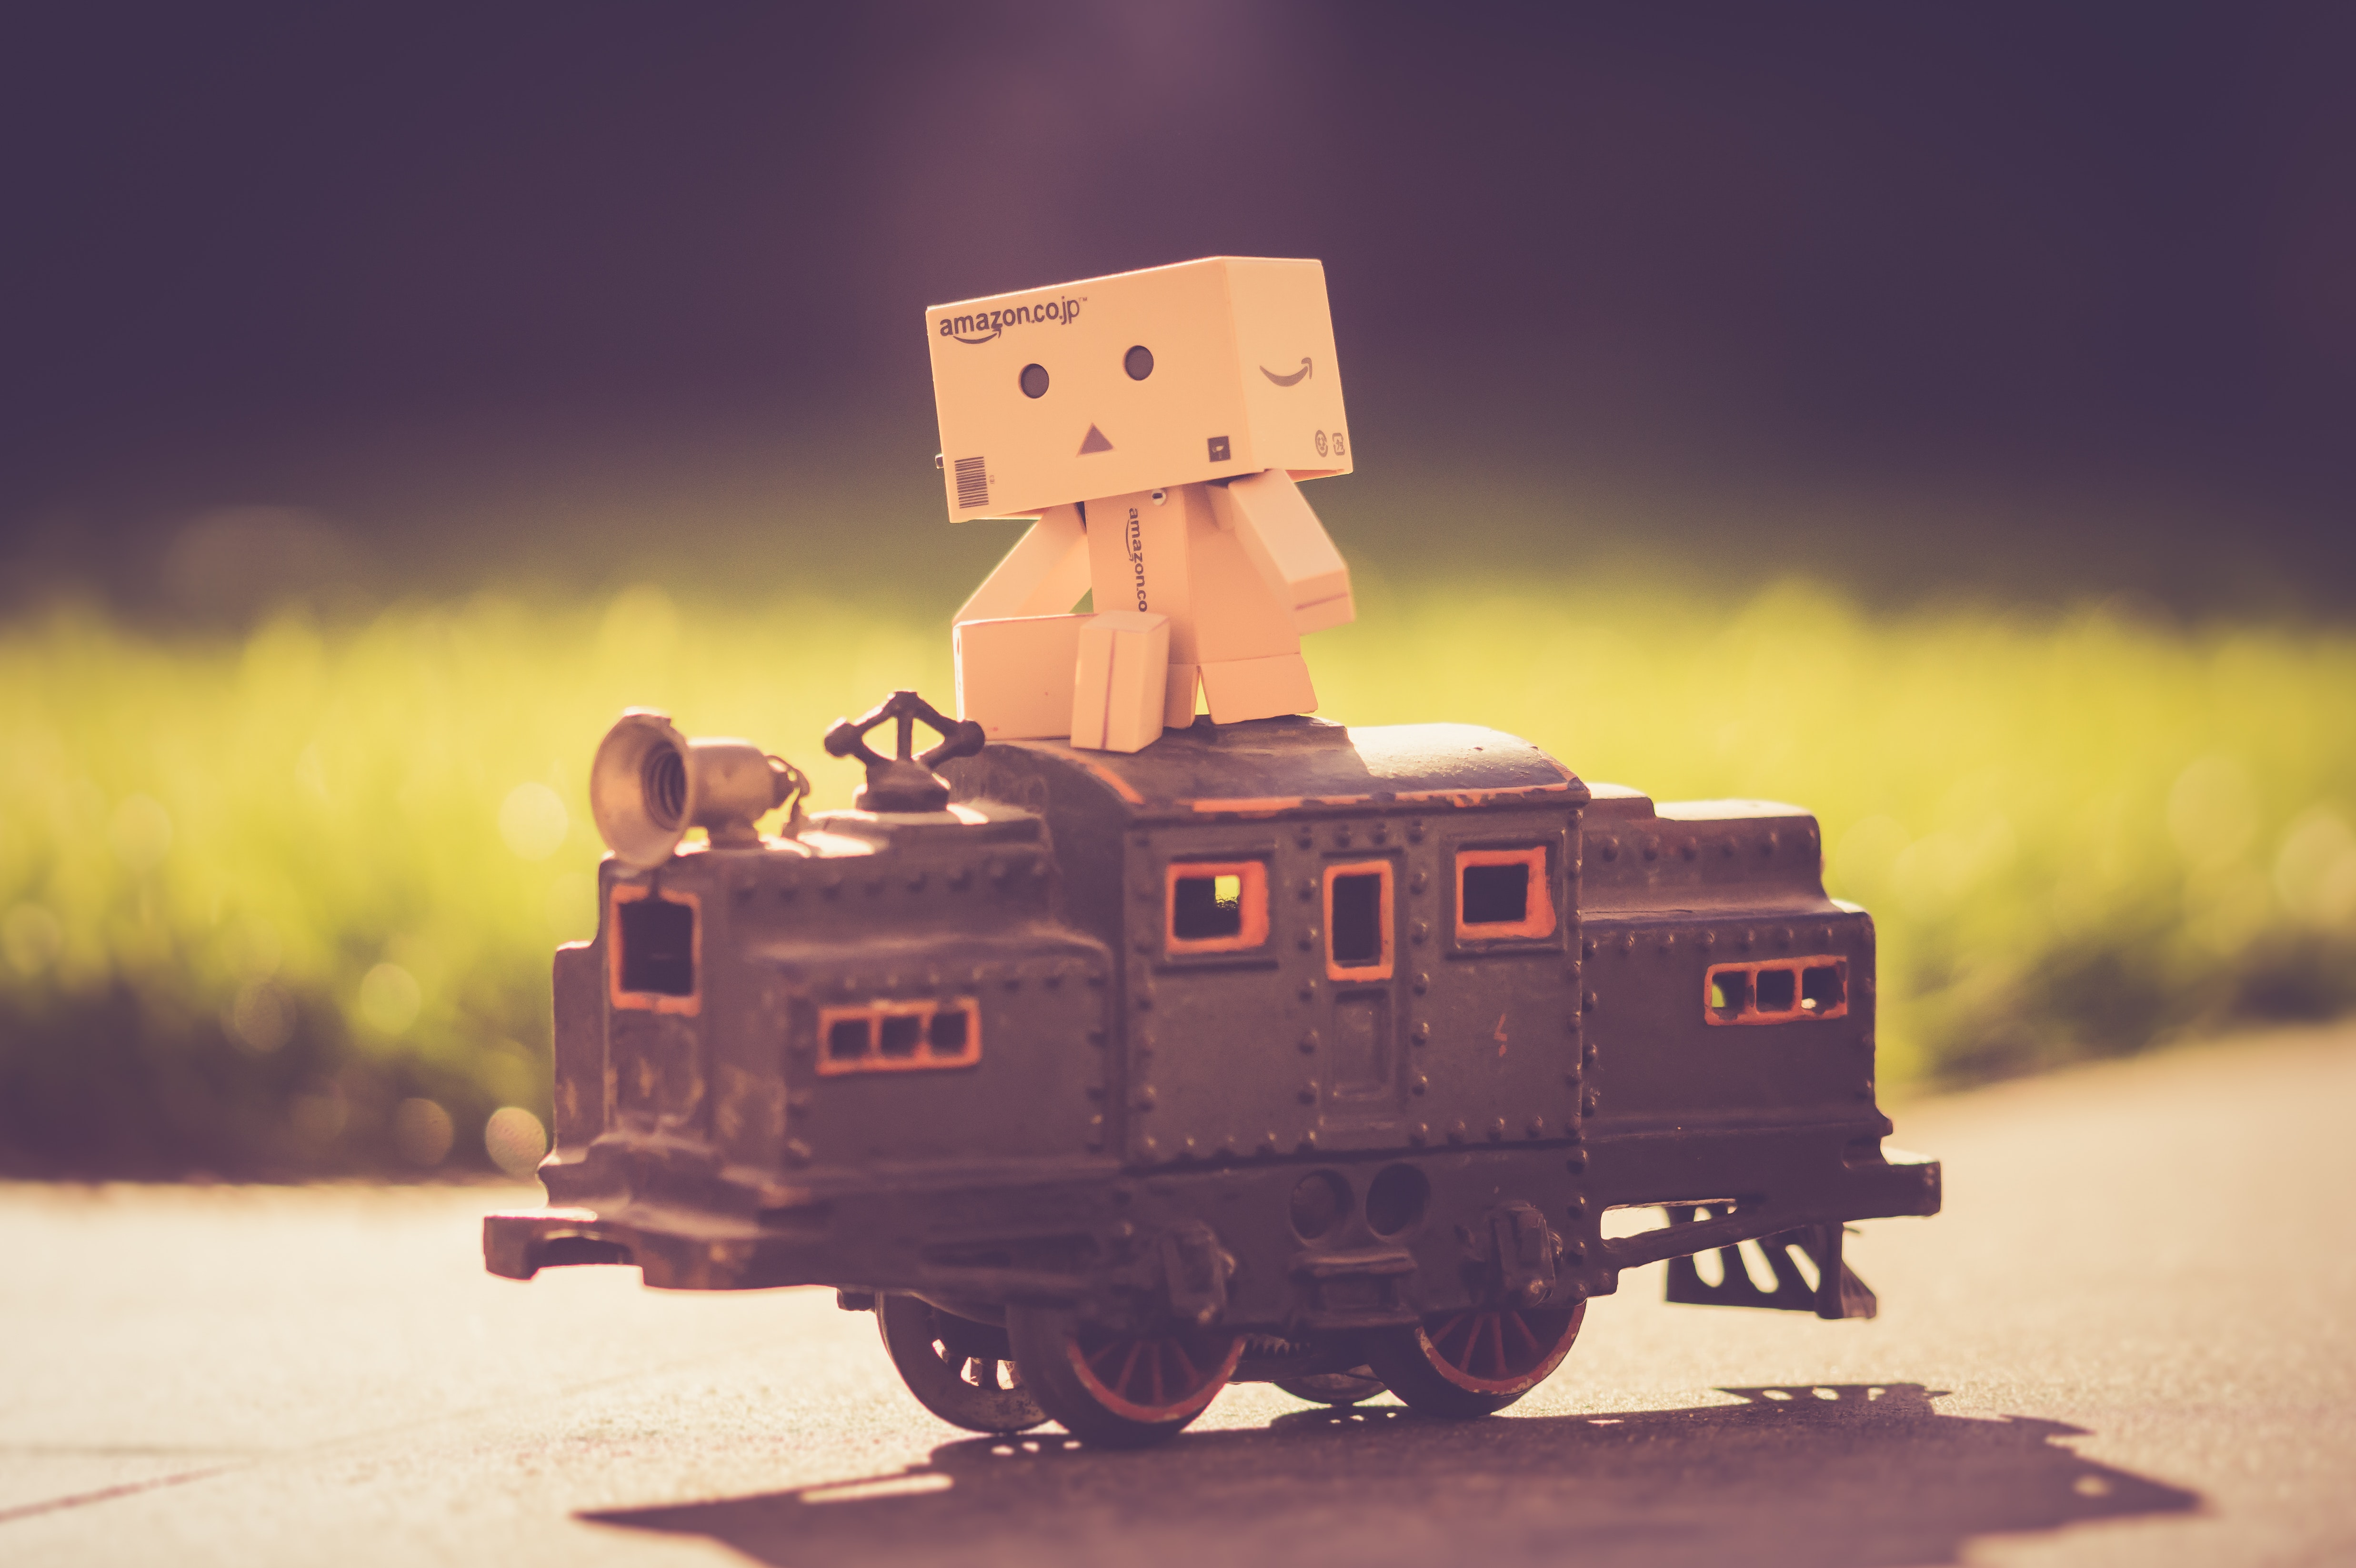 Danboard on top of toy train photo